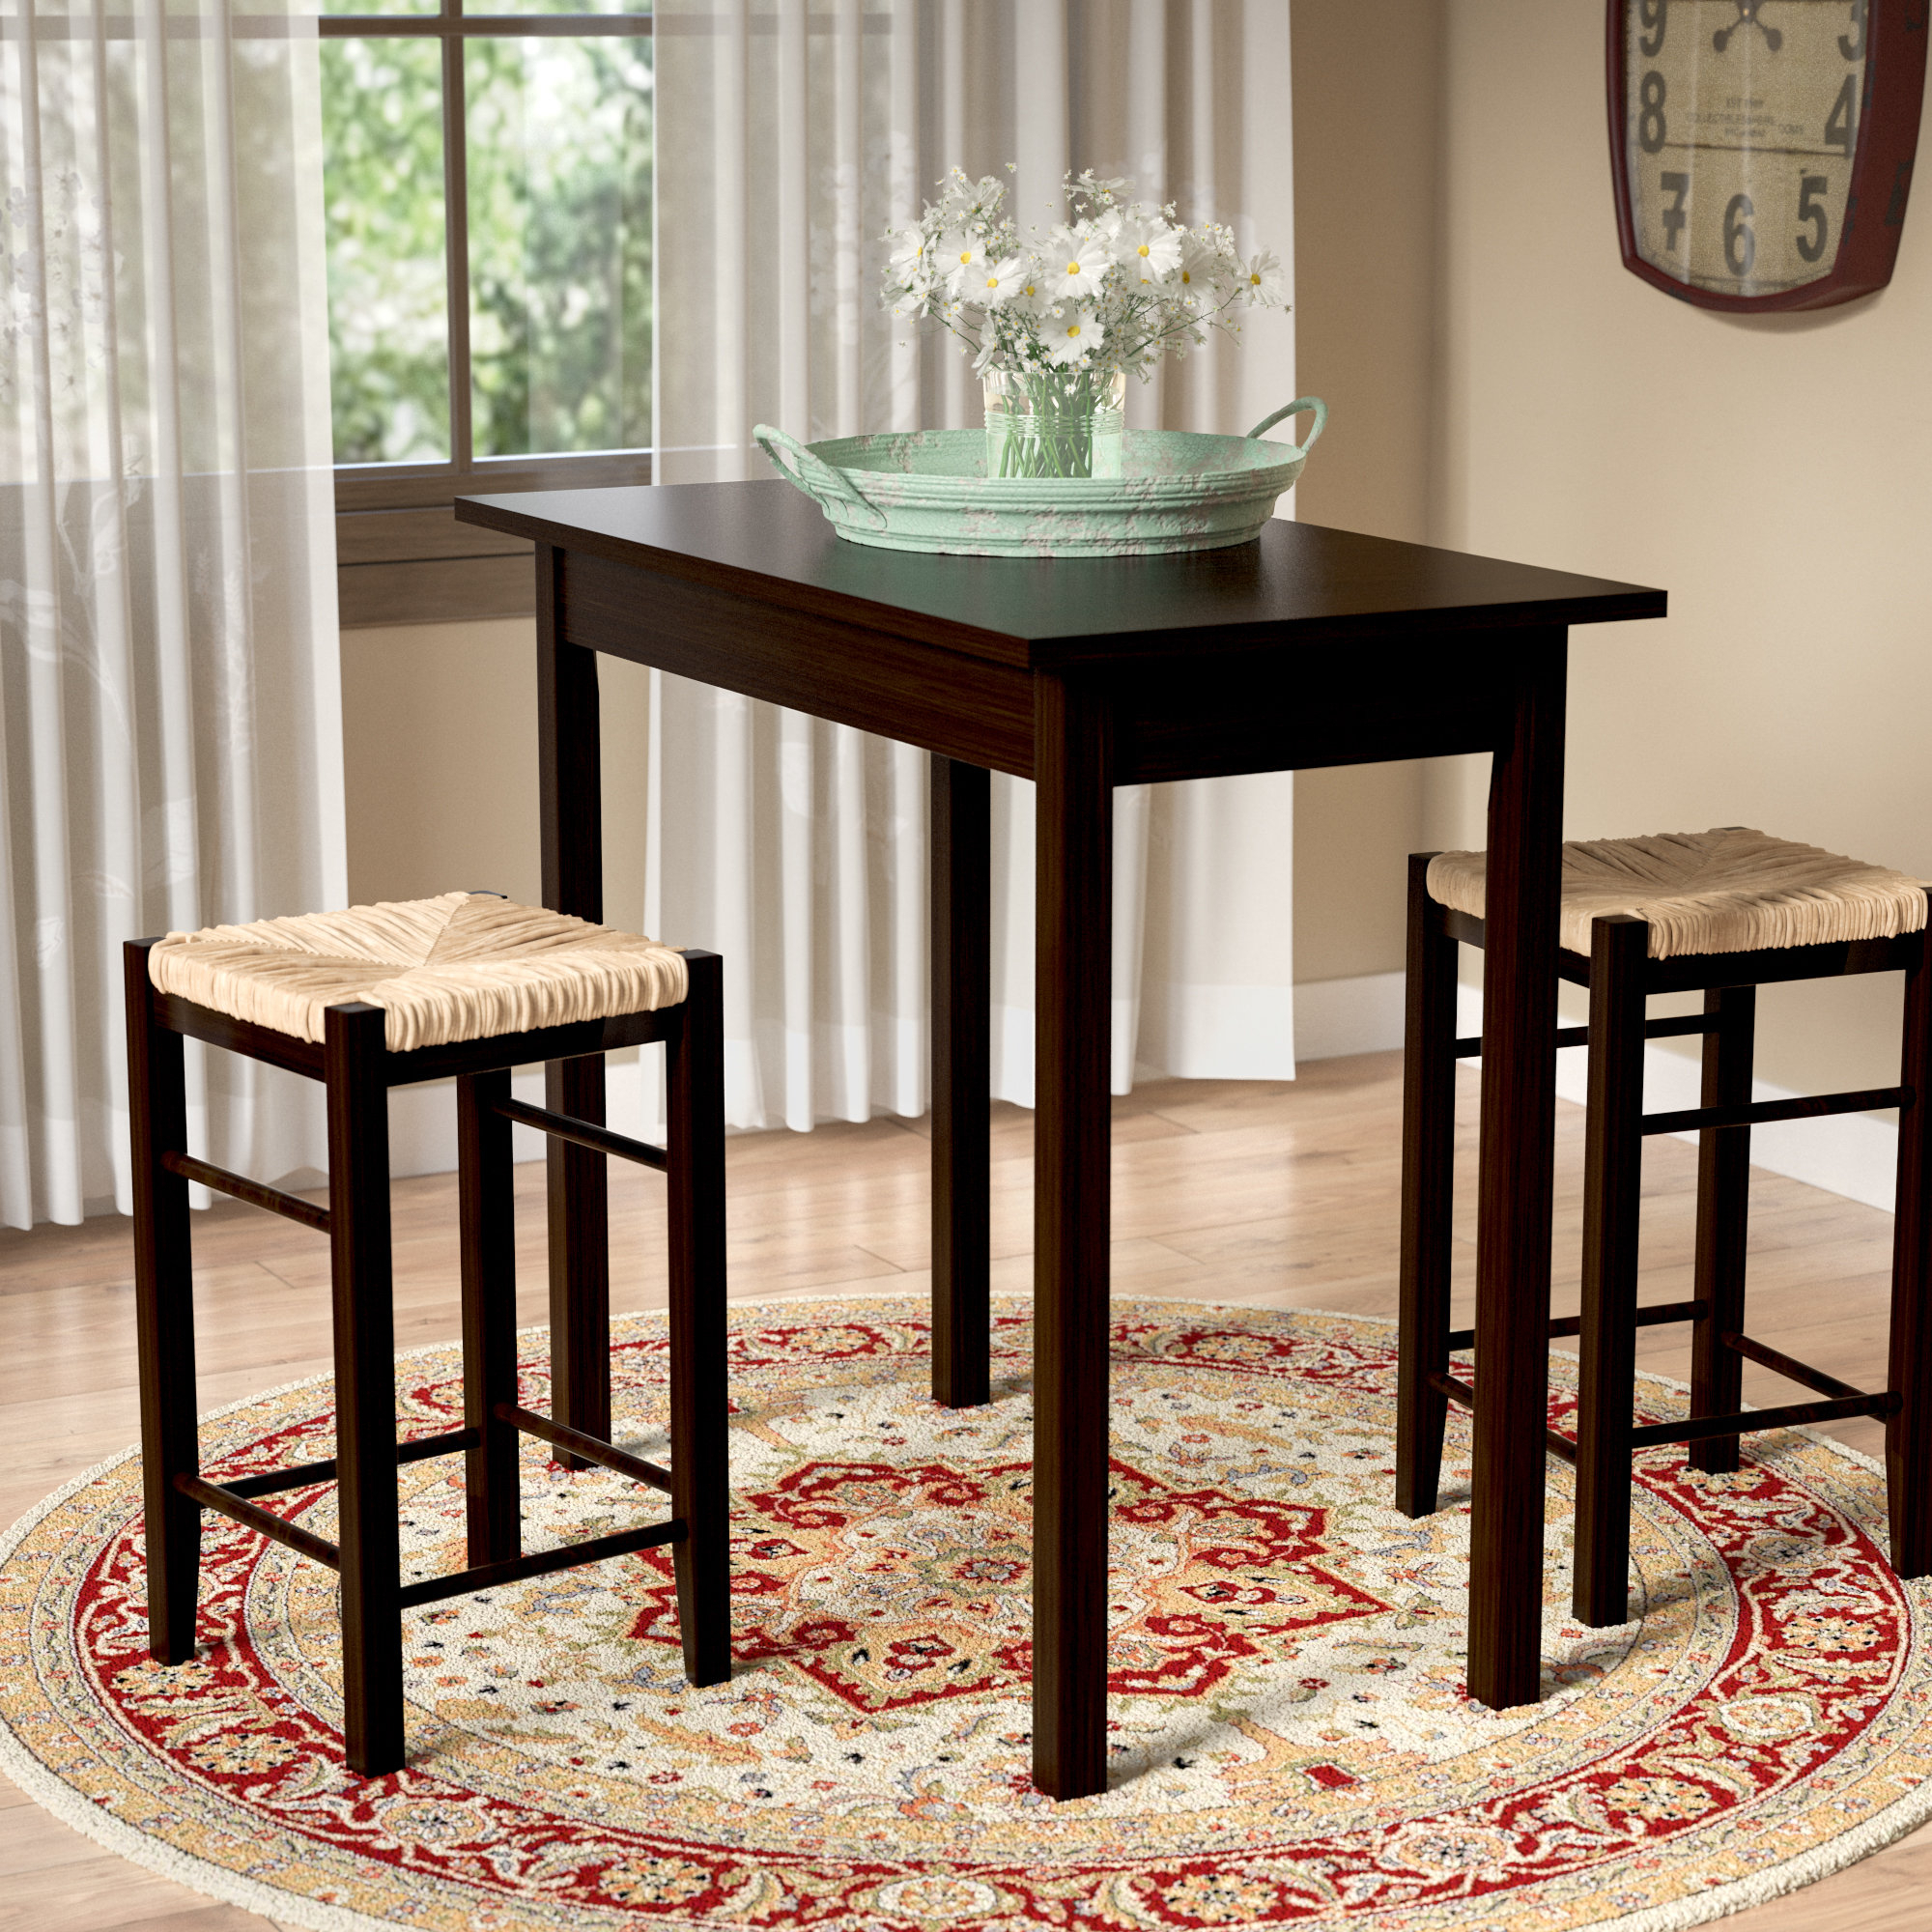 Tenney 3 Piece Counter Height Dining Set Inside Latest Berrios 3 Piece Counter Height Dining Sets (View 3 of 20)